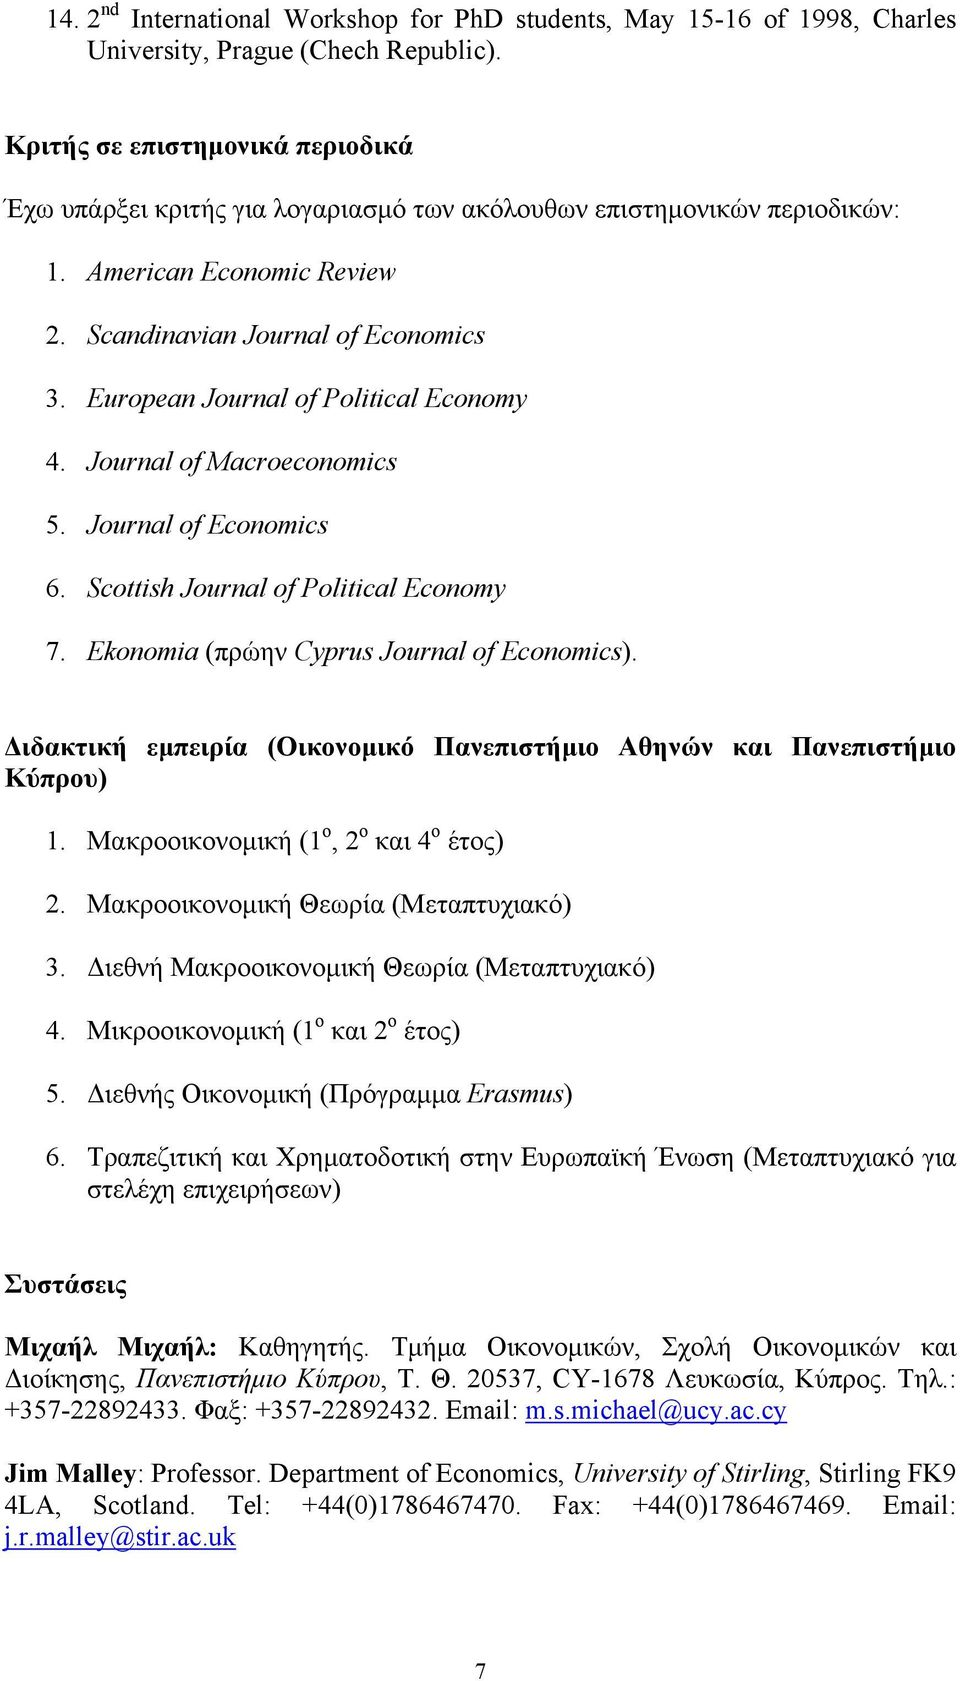 European Journal of Political Economy 4. Journal of Macroeconomics 5. Journal of Economics 6. Scottish Journal of Political Economy 7. Ekonomia (πρώην Cyprus Journal of Economics).